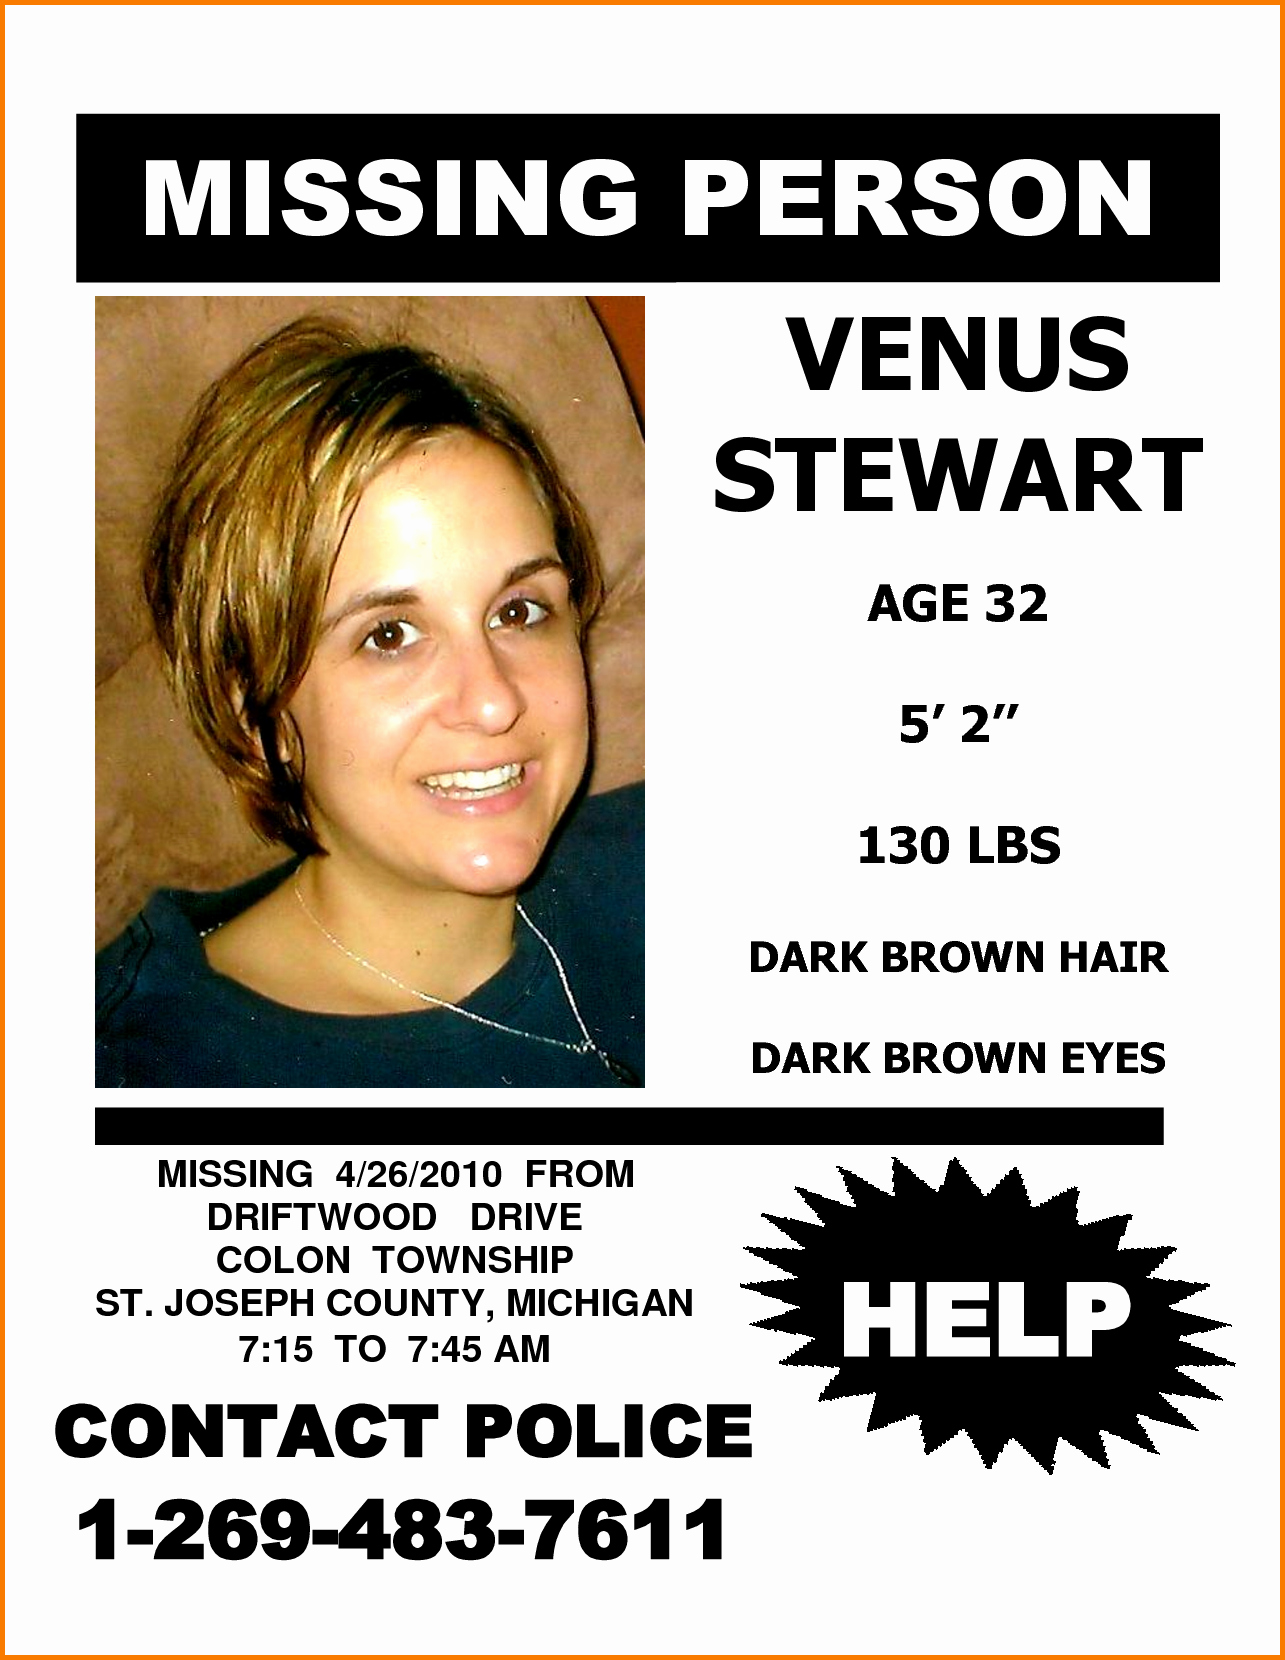 Missing Persons Flyer Template Awesome Missing Person Flyer Bamboodownunder